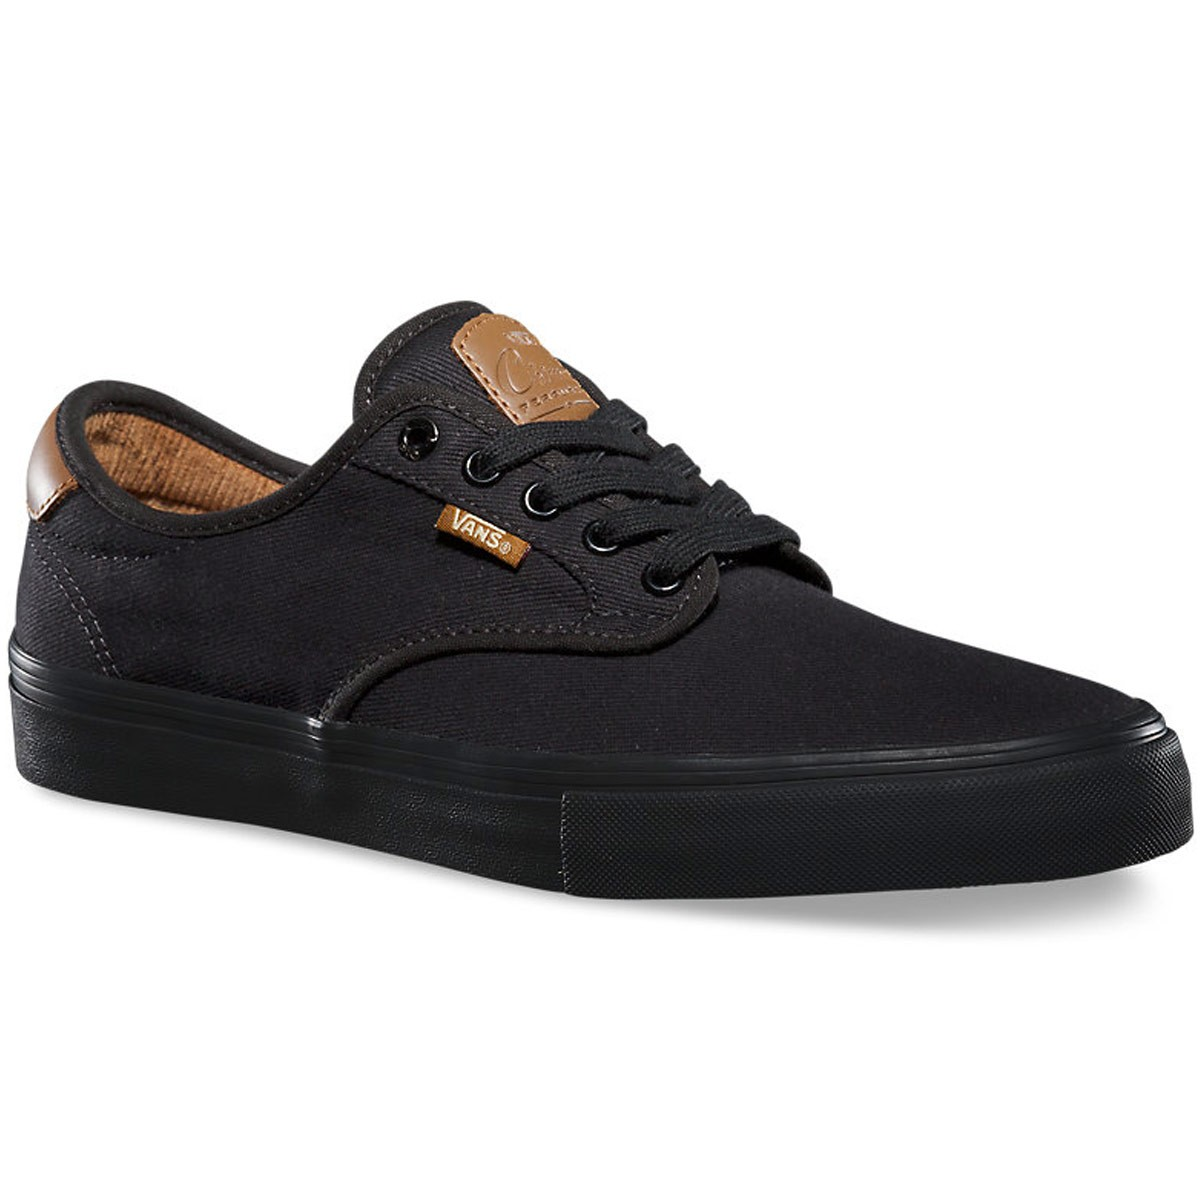 Vans Chima Ferguson Pro Youth Shoes - Black/Black - 5.0